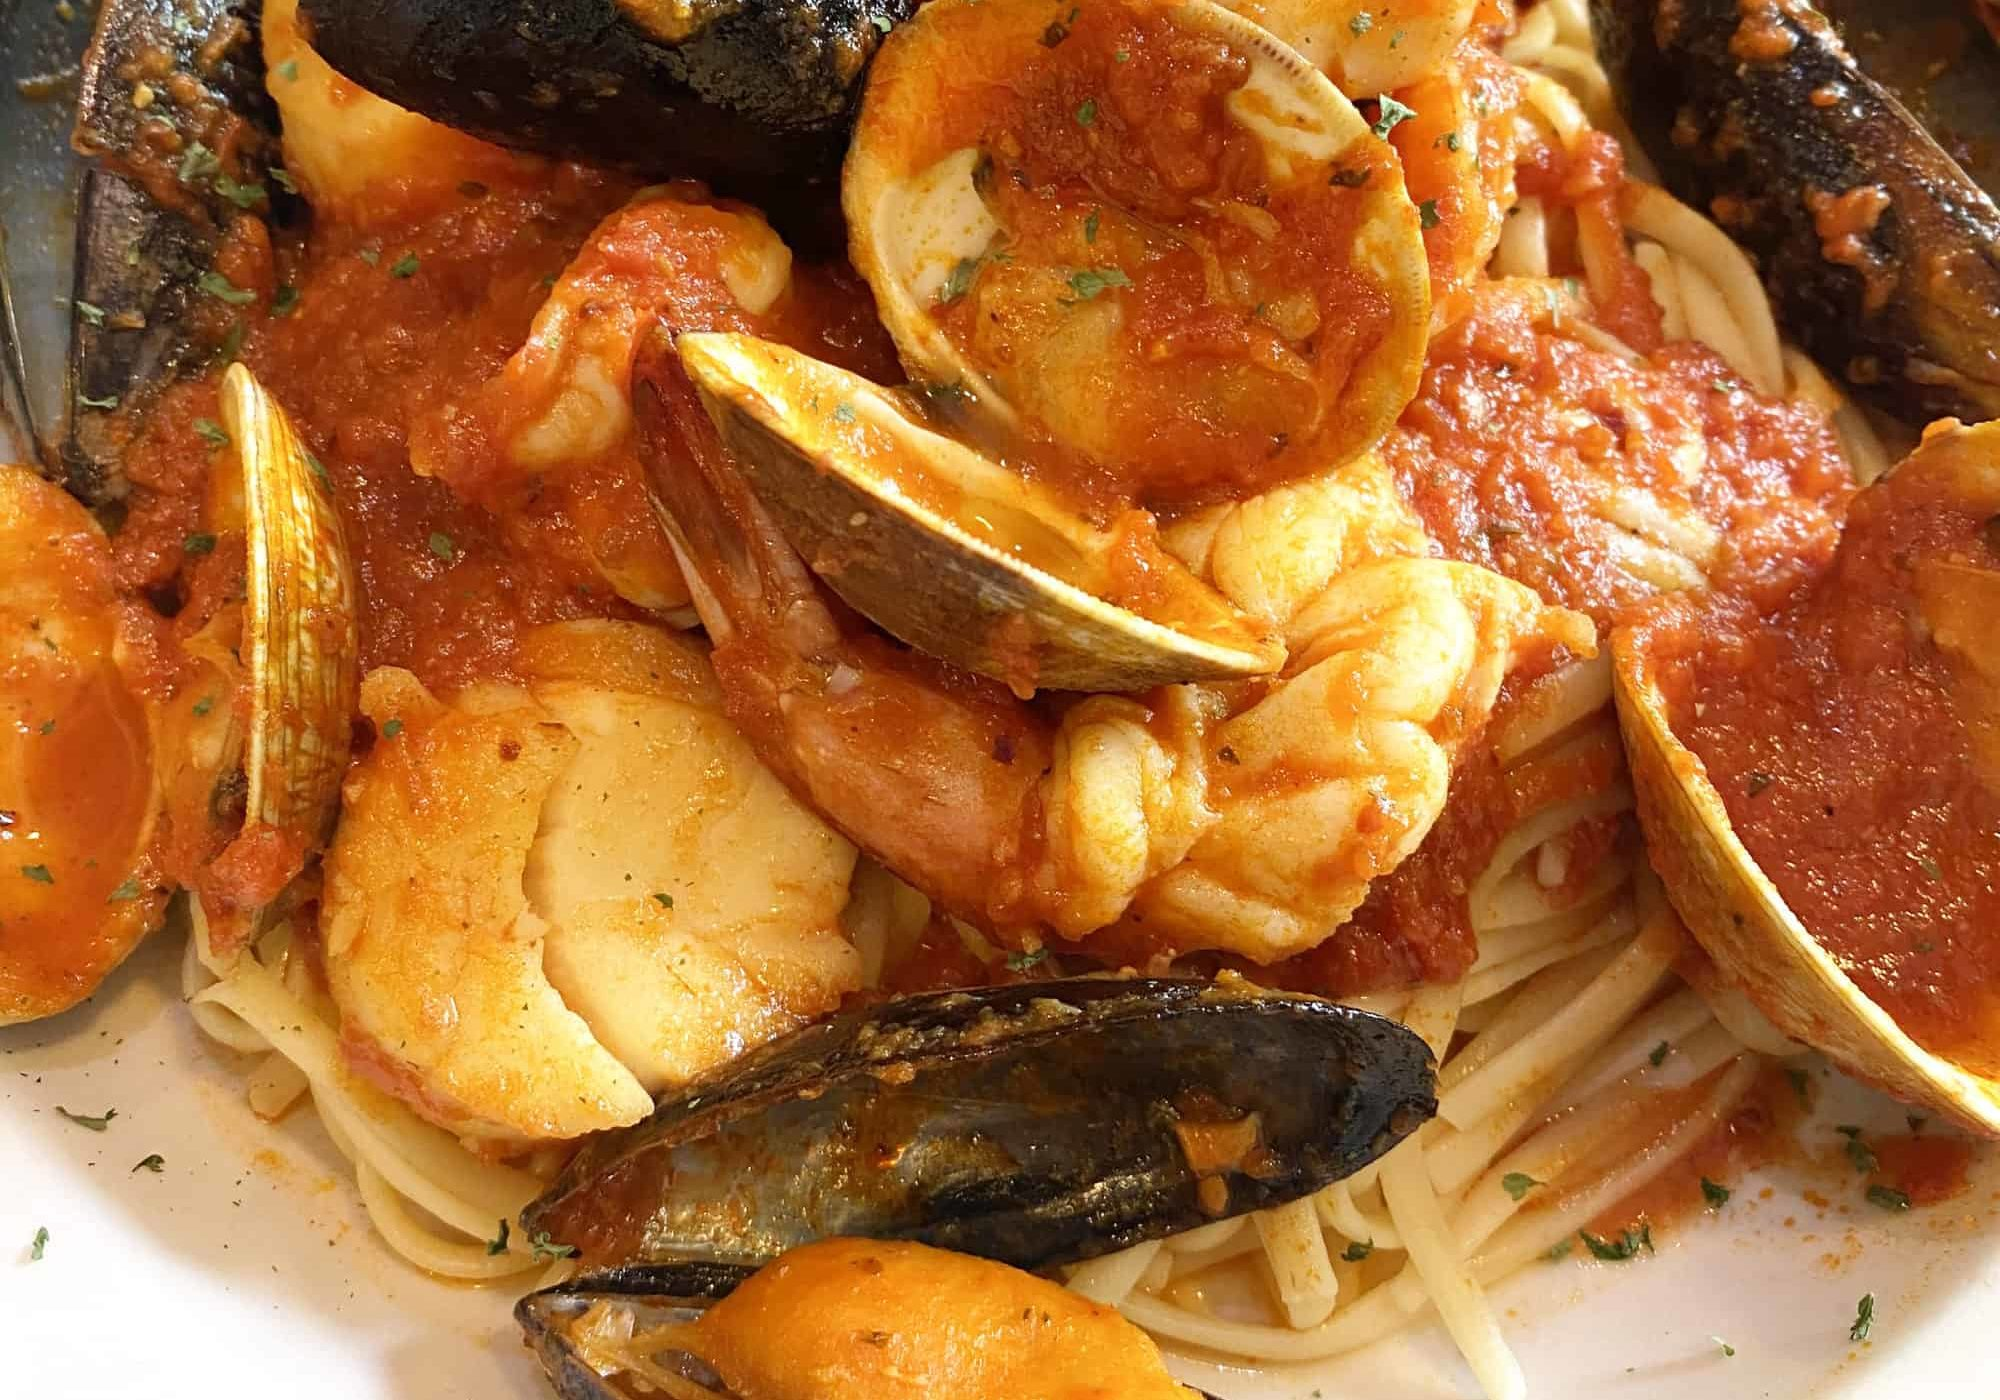 spaghetti and clams seafood dish